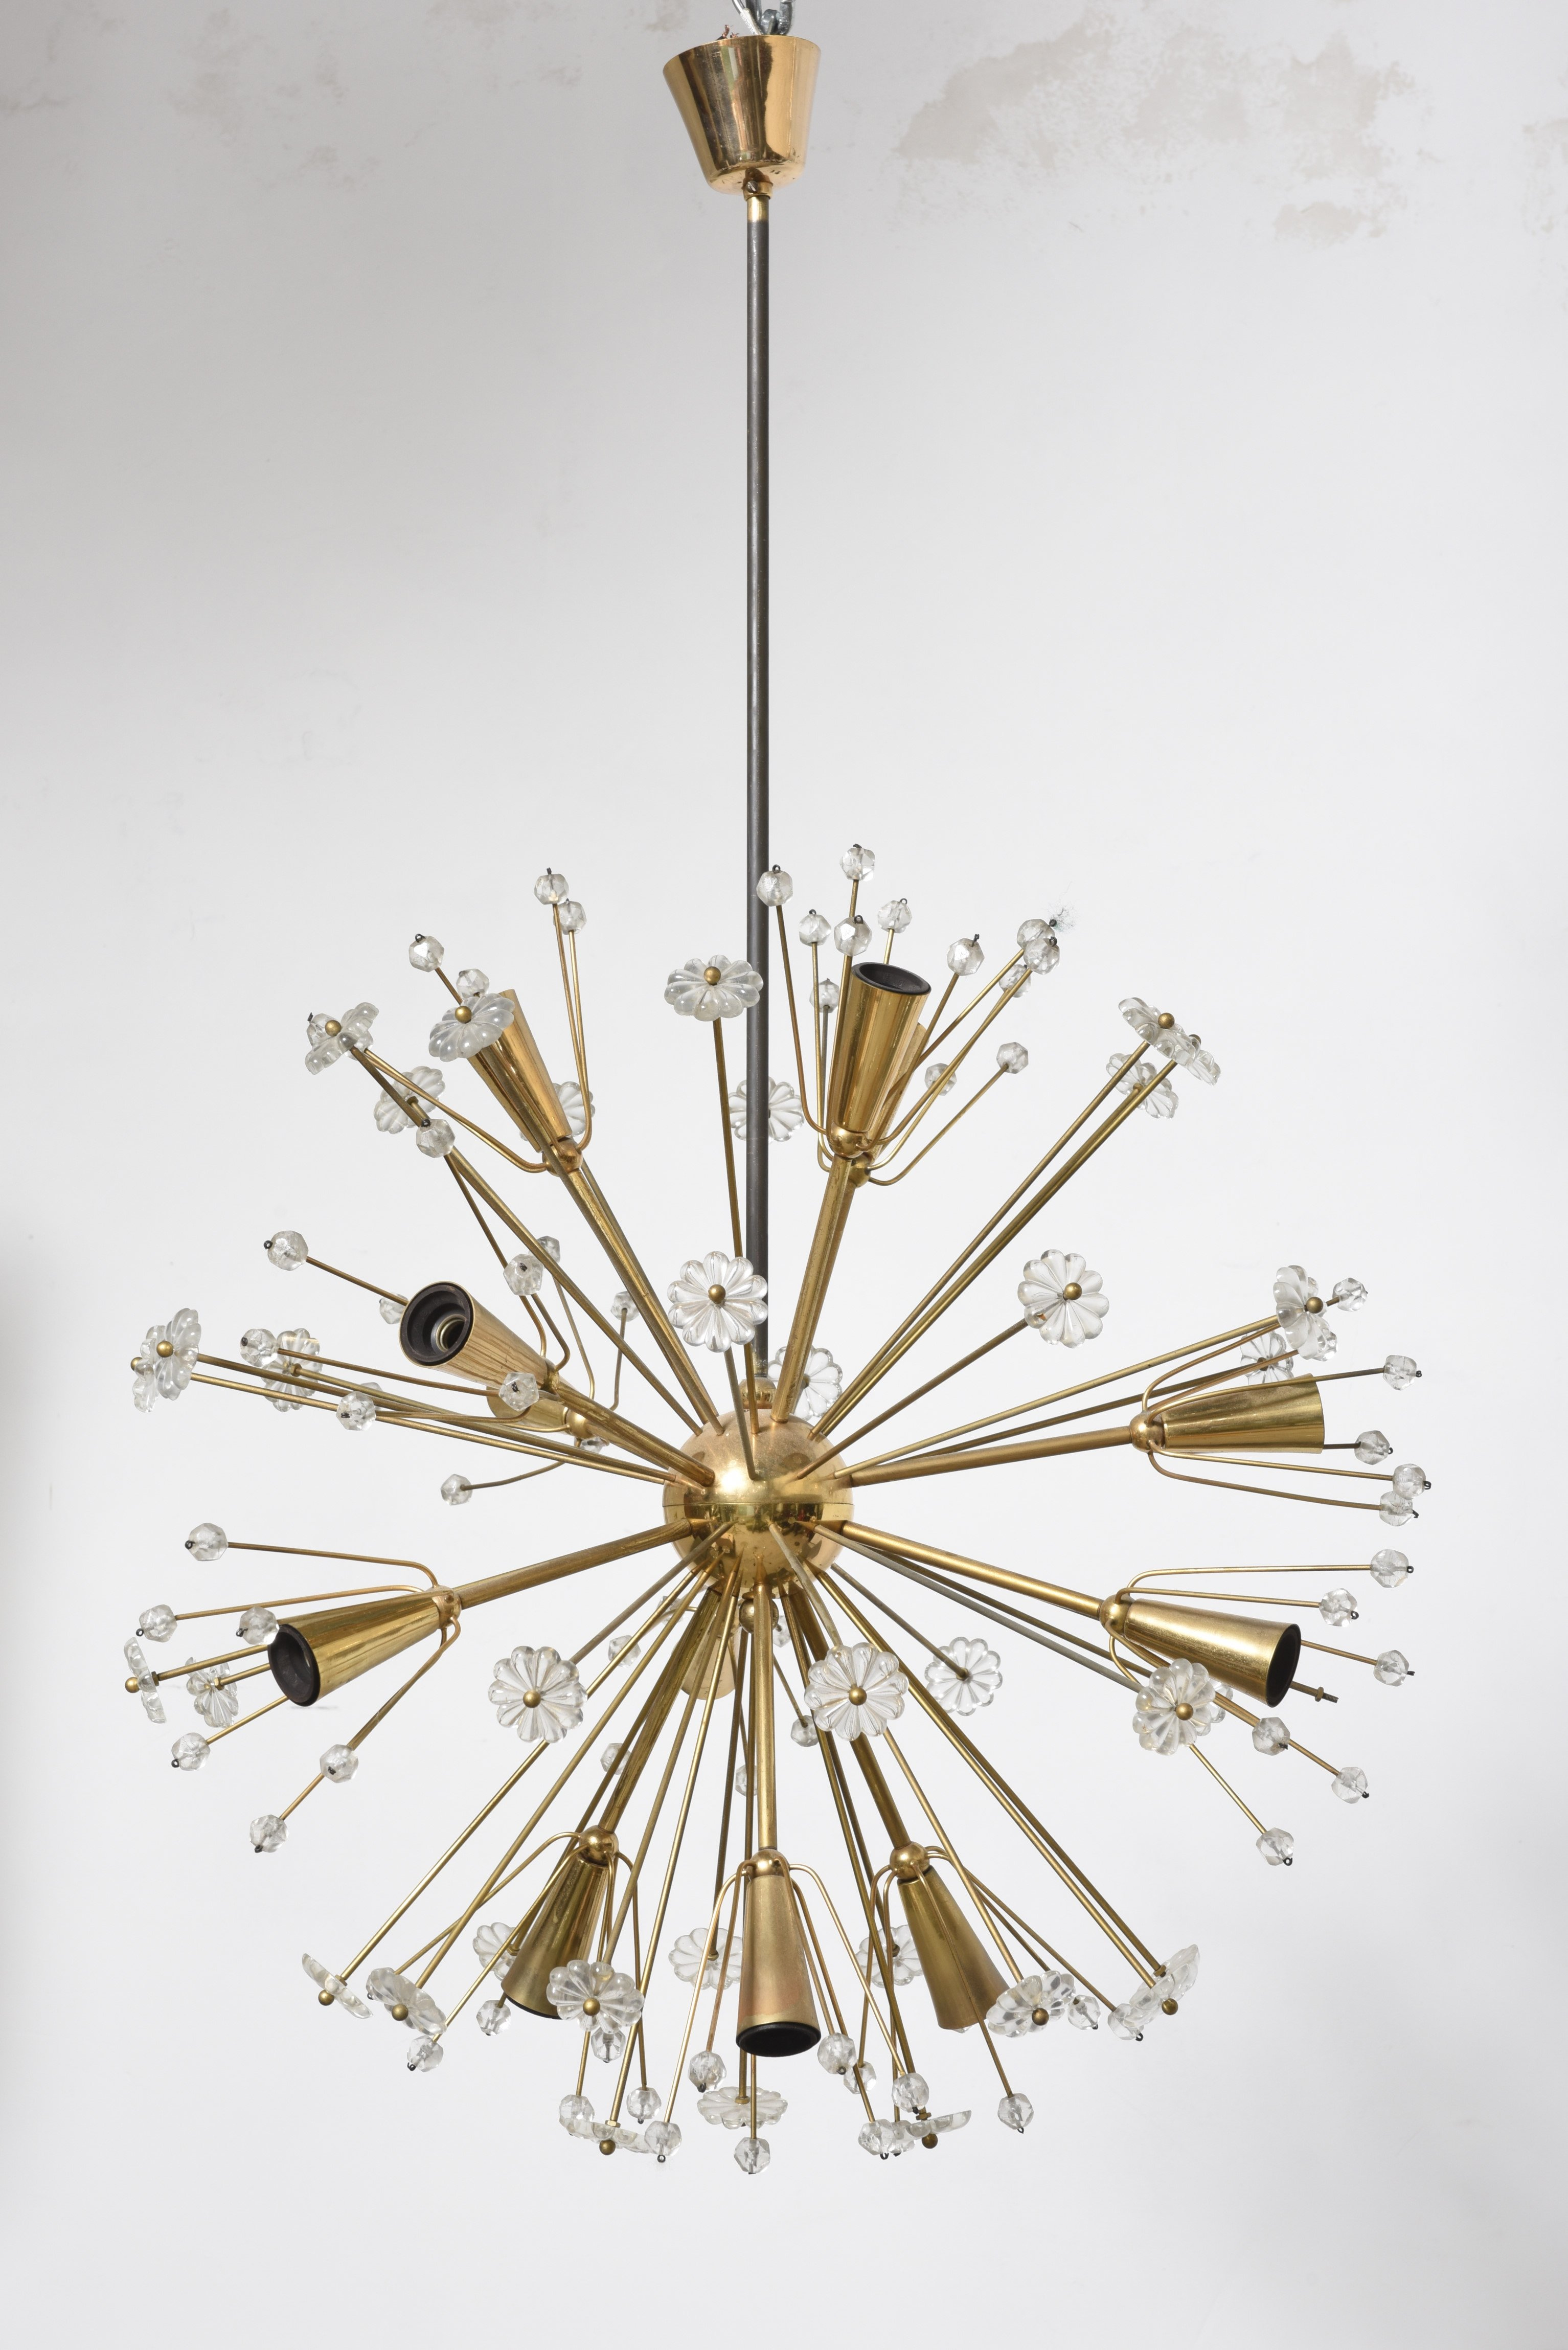 Large gold plated sputnik chandelier by emil stejnar for rupert large gold plated sputnik chandelier by emil stejnar for rupert nikoll mozeypictures Image collections